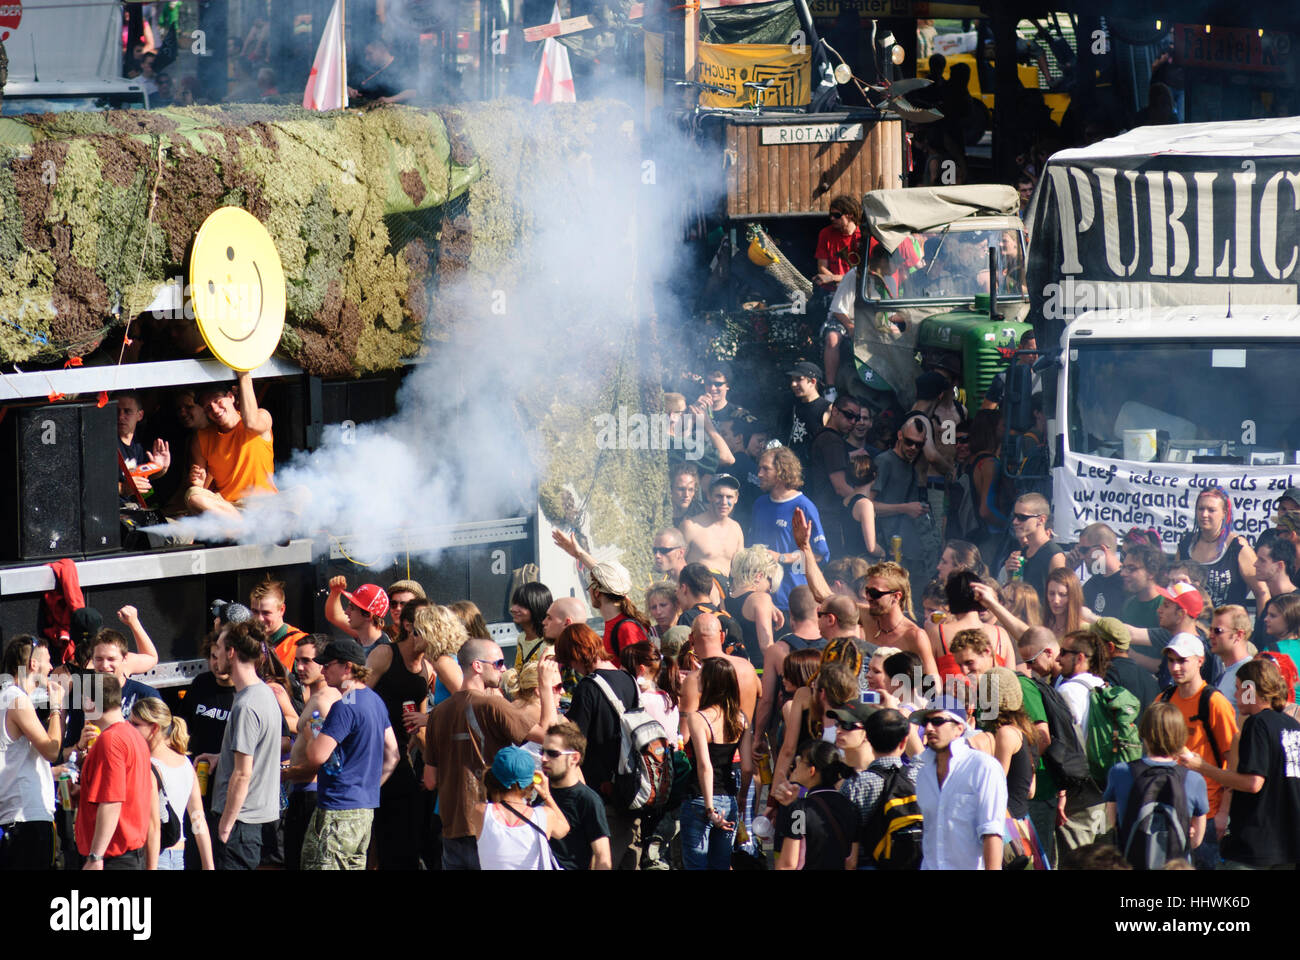 Wien, Vienna: Globalization-critical Free Parade at the city center on the ring, 01. Old Town, Wien, Austria - Stock Image